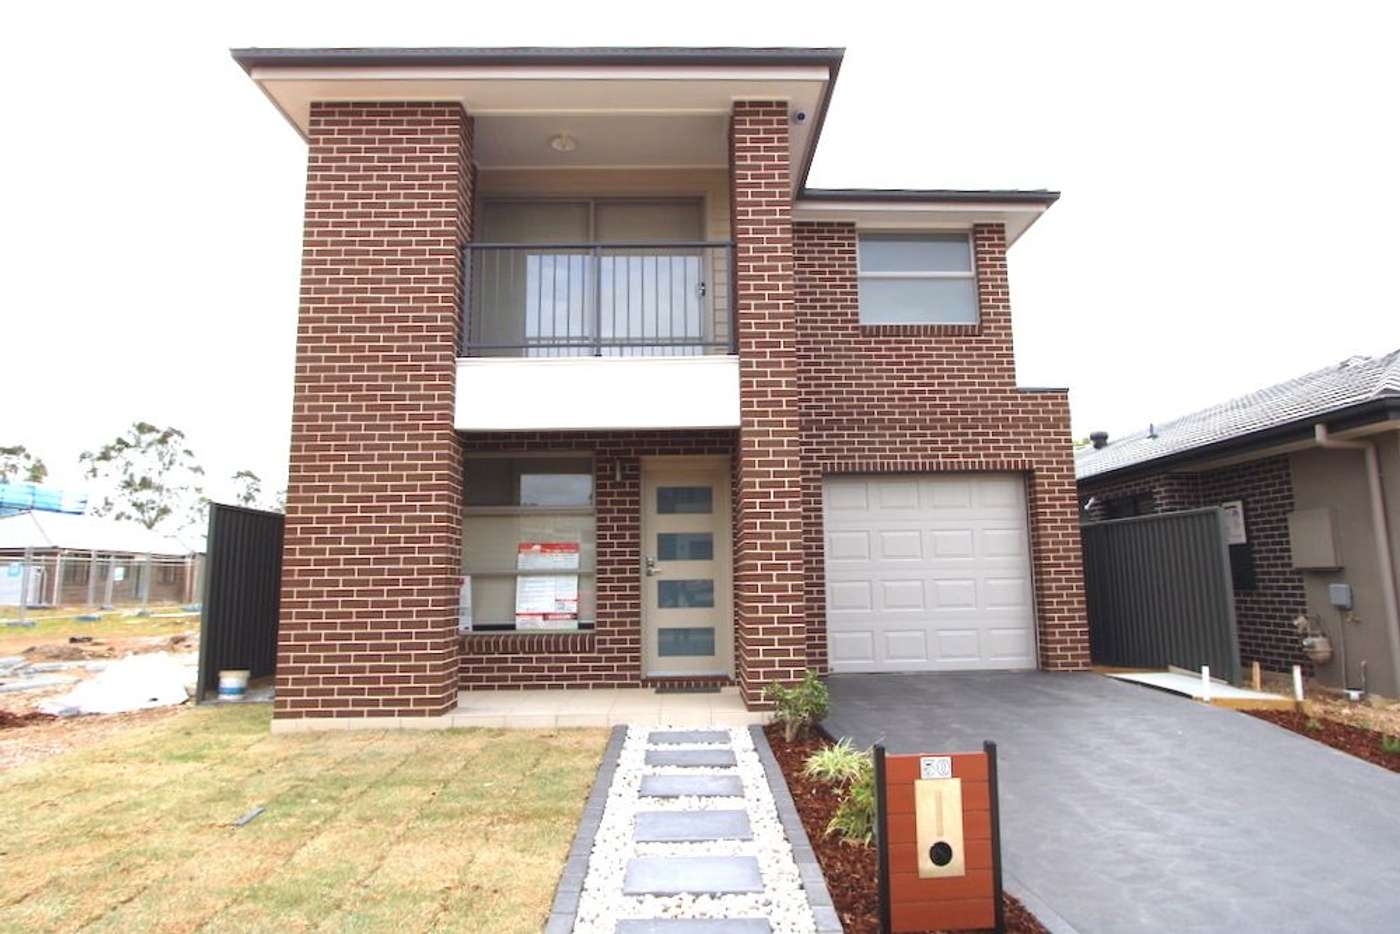 Main view of Homely house listing, 50 Chatterton Street, Denham Court NSW 2565